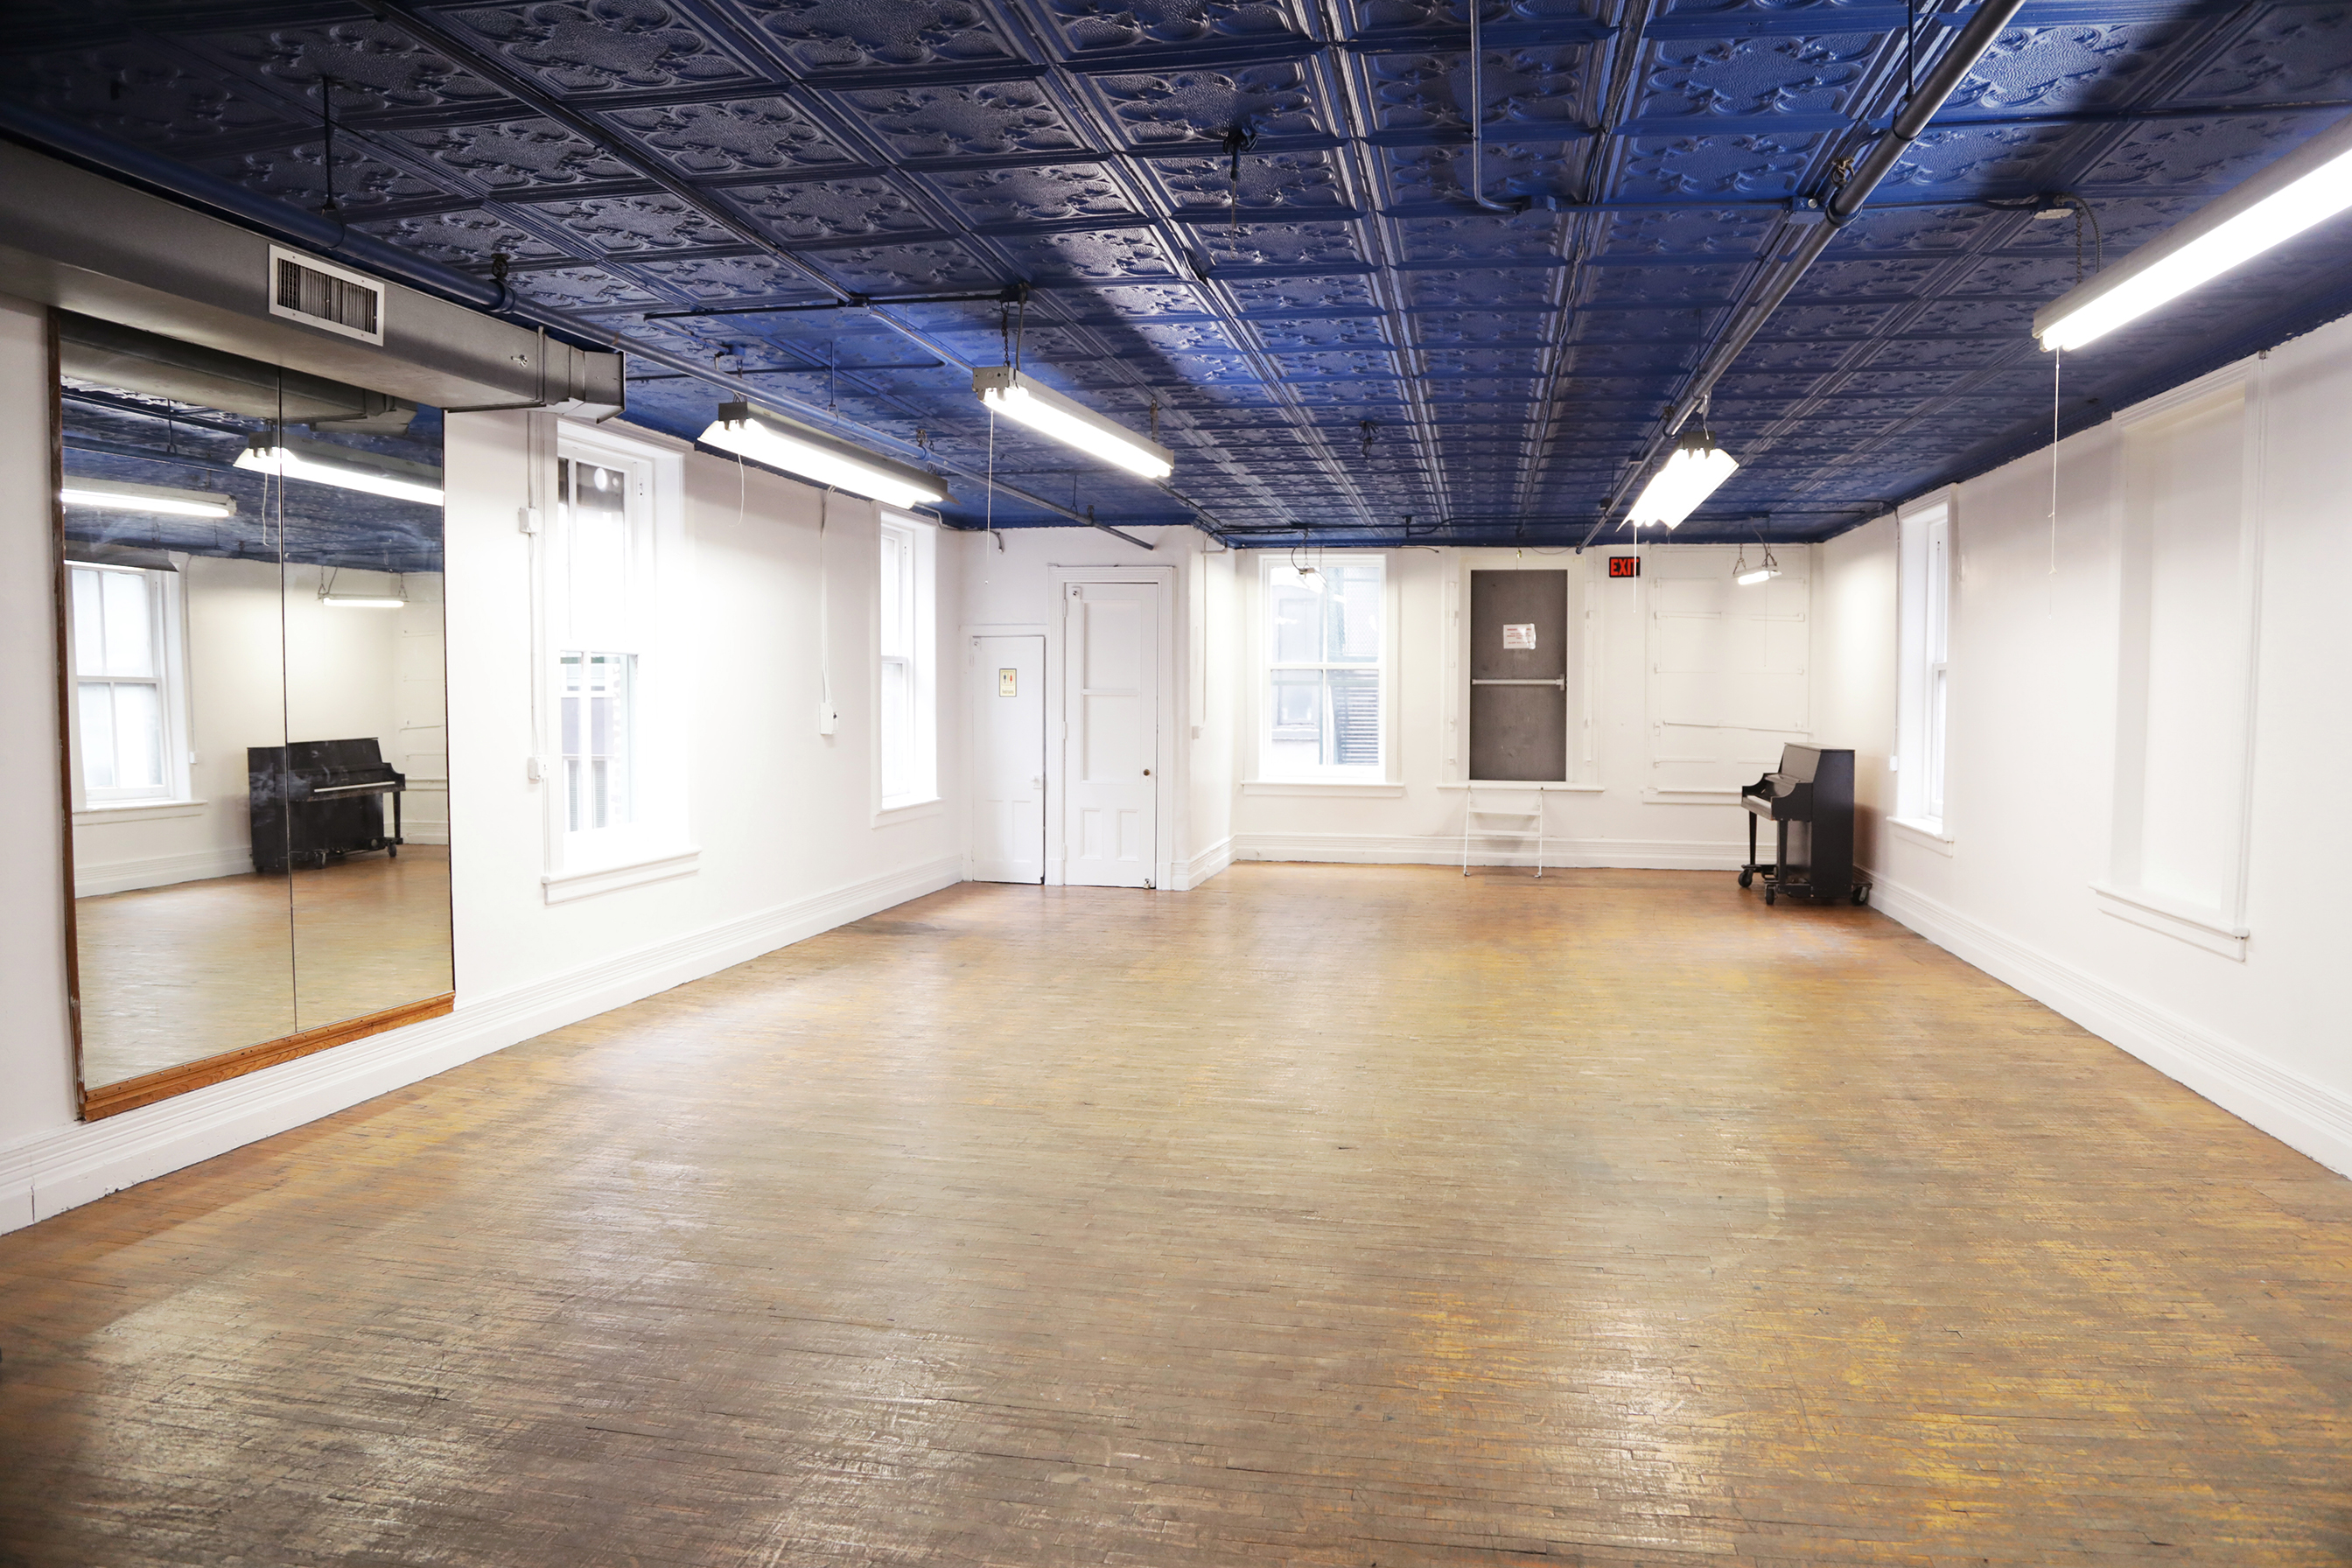 A room with white walls, a blue tiled ceiling, and a wooden floor. A piano is in one corner and on the opposite wall are mirror panels. There is a lot of natural light from the windows and artificial light from the ceiling lights.